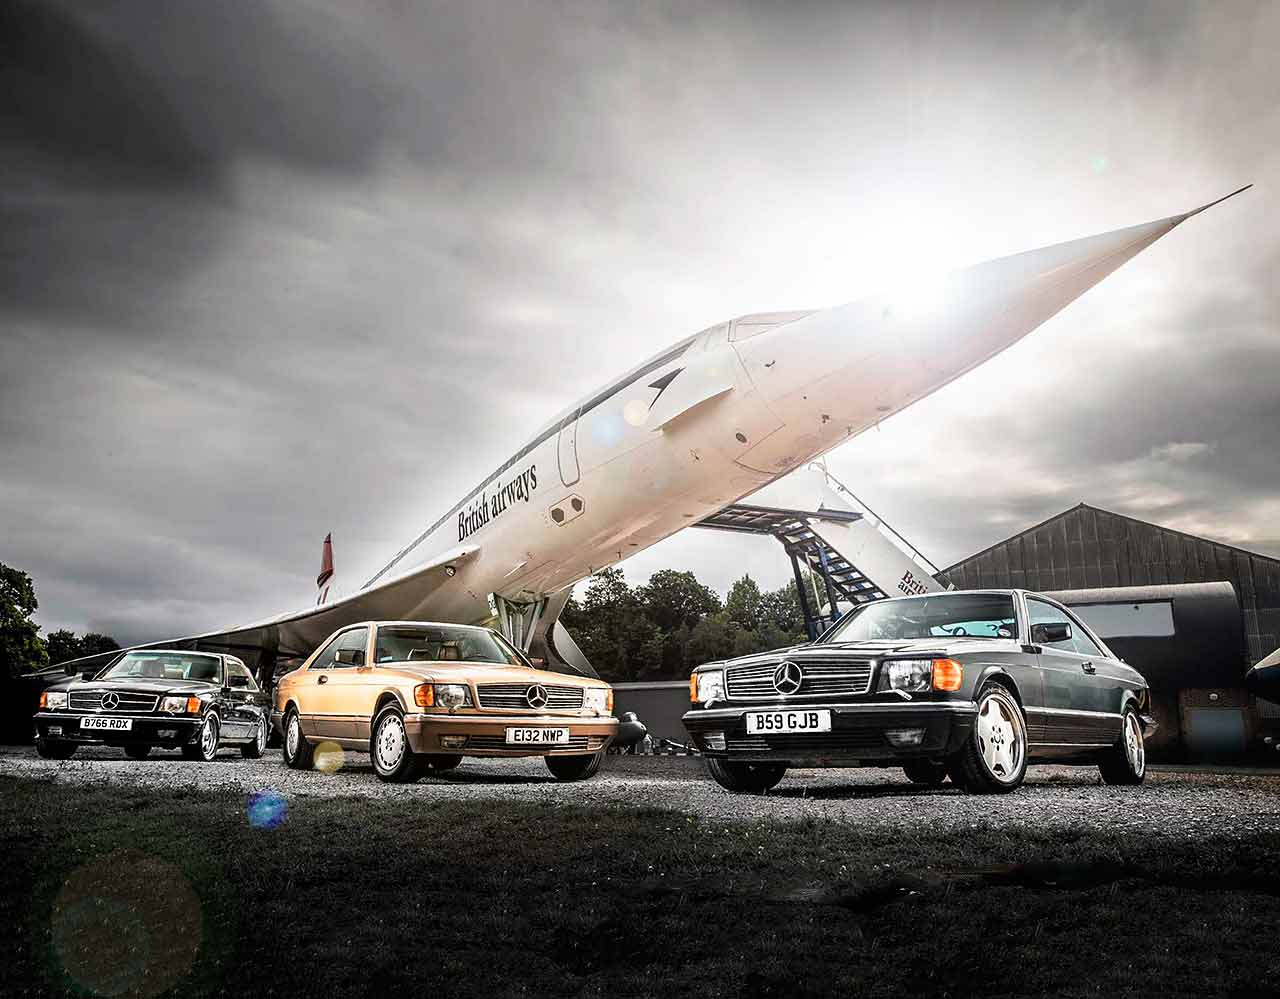 1982 Mercedes-Benz 500SEC C126 and 1986 560SEC - reliving Eighties F1 with the ex-Senna, Manseil and Rosberg cars